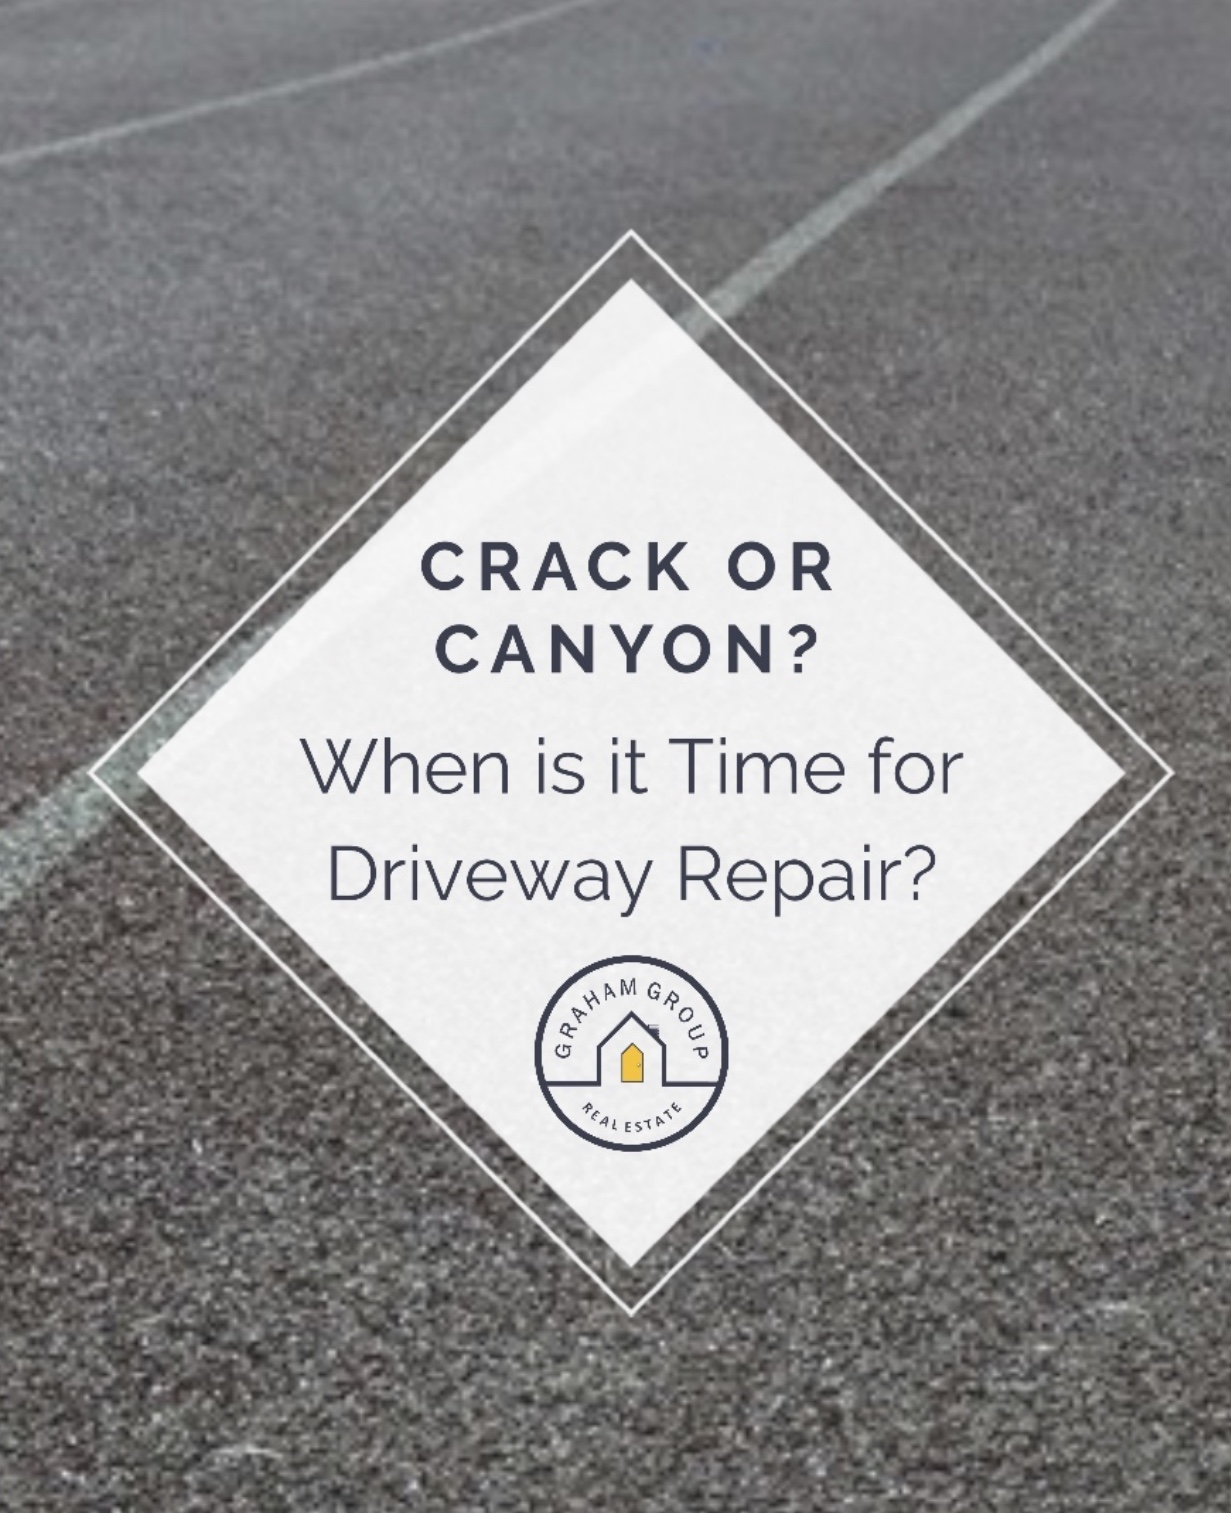 Crack or Canyon? When is it Time for Driveway Repair?